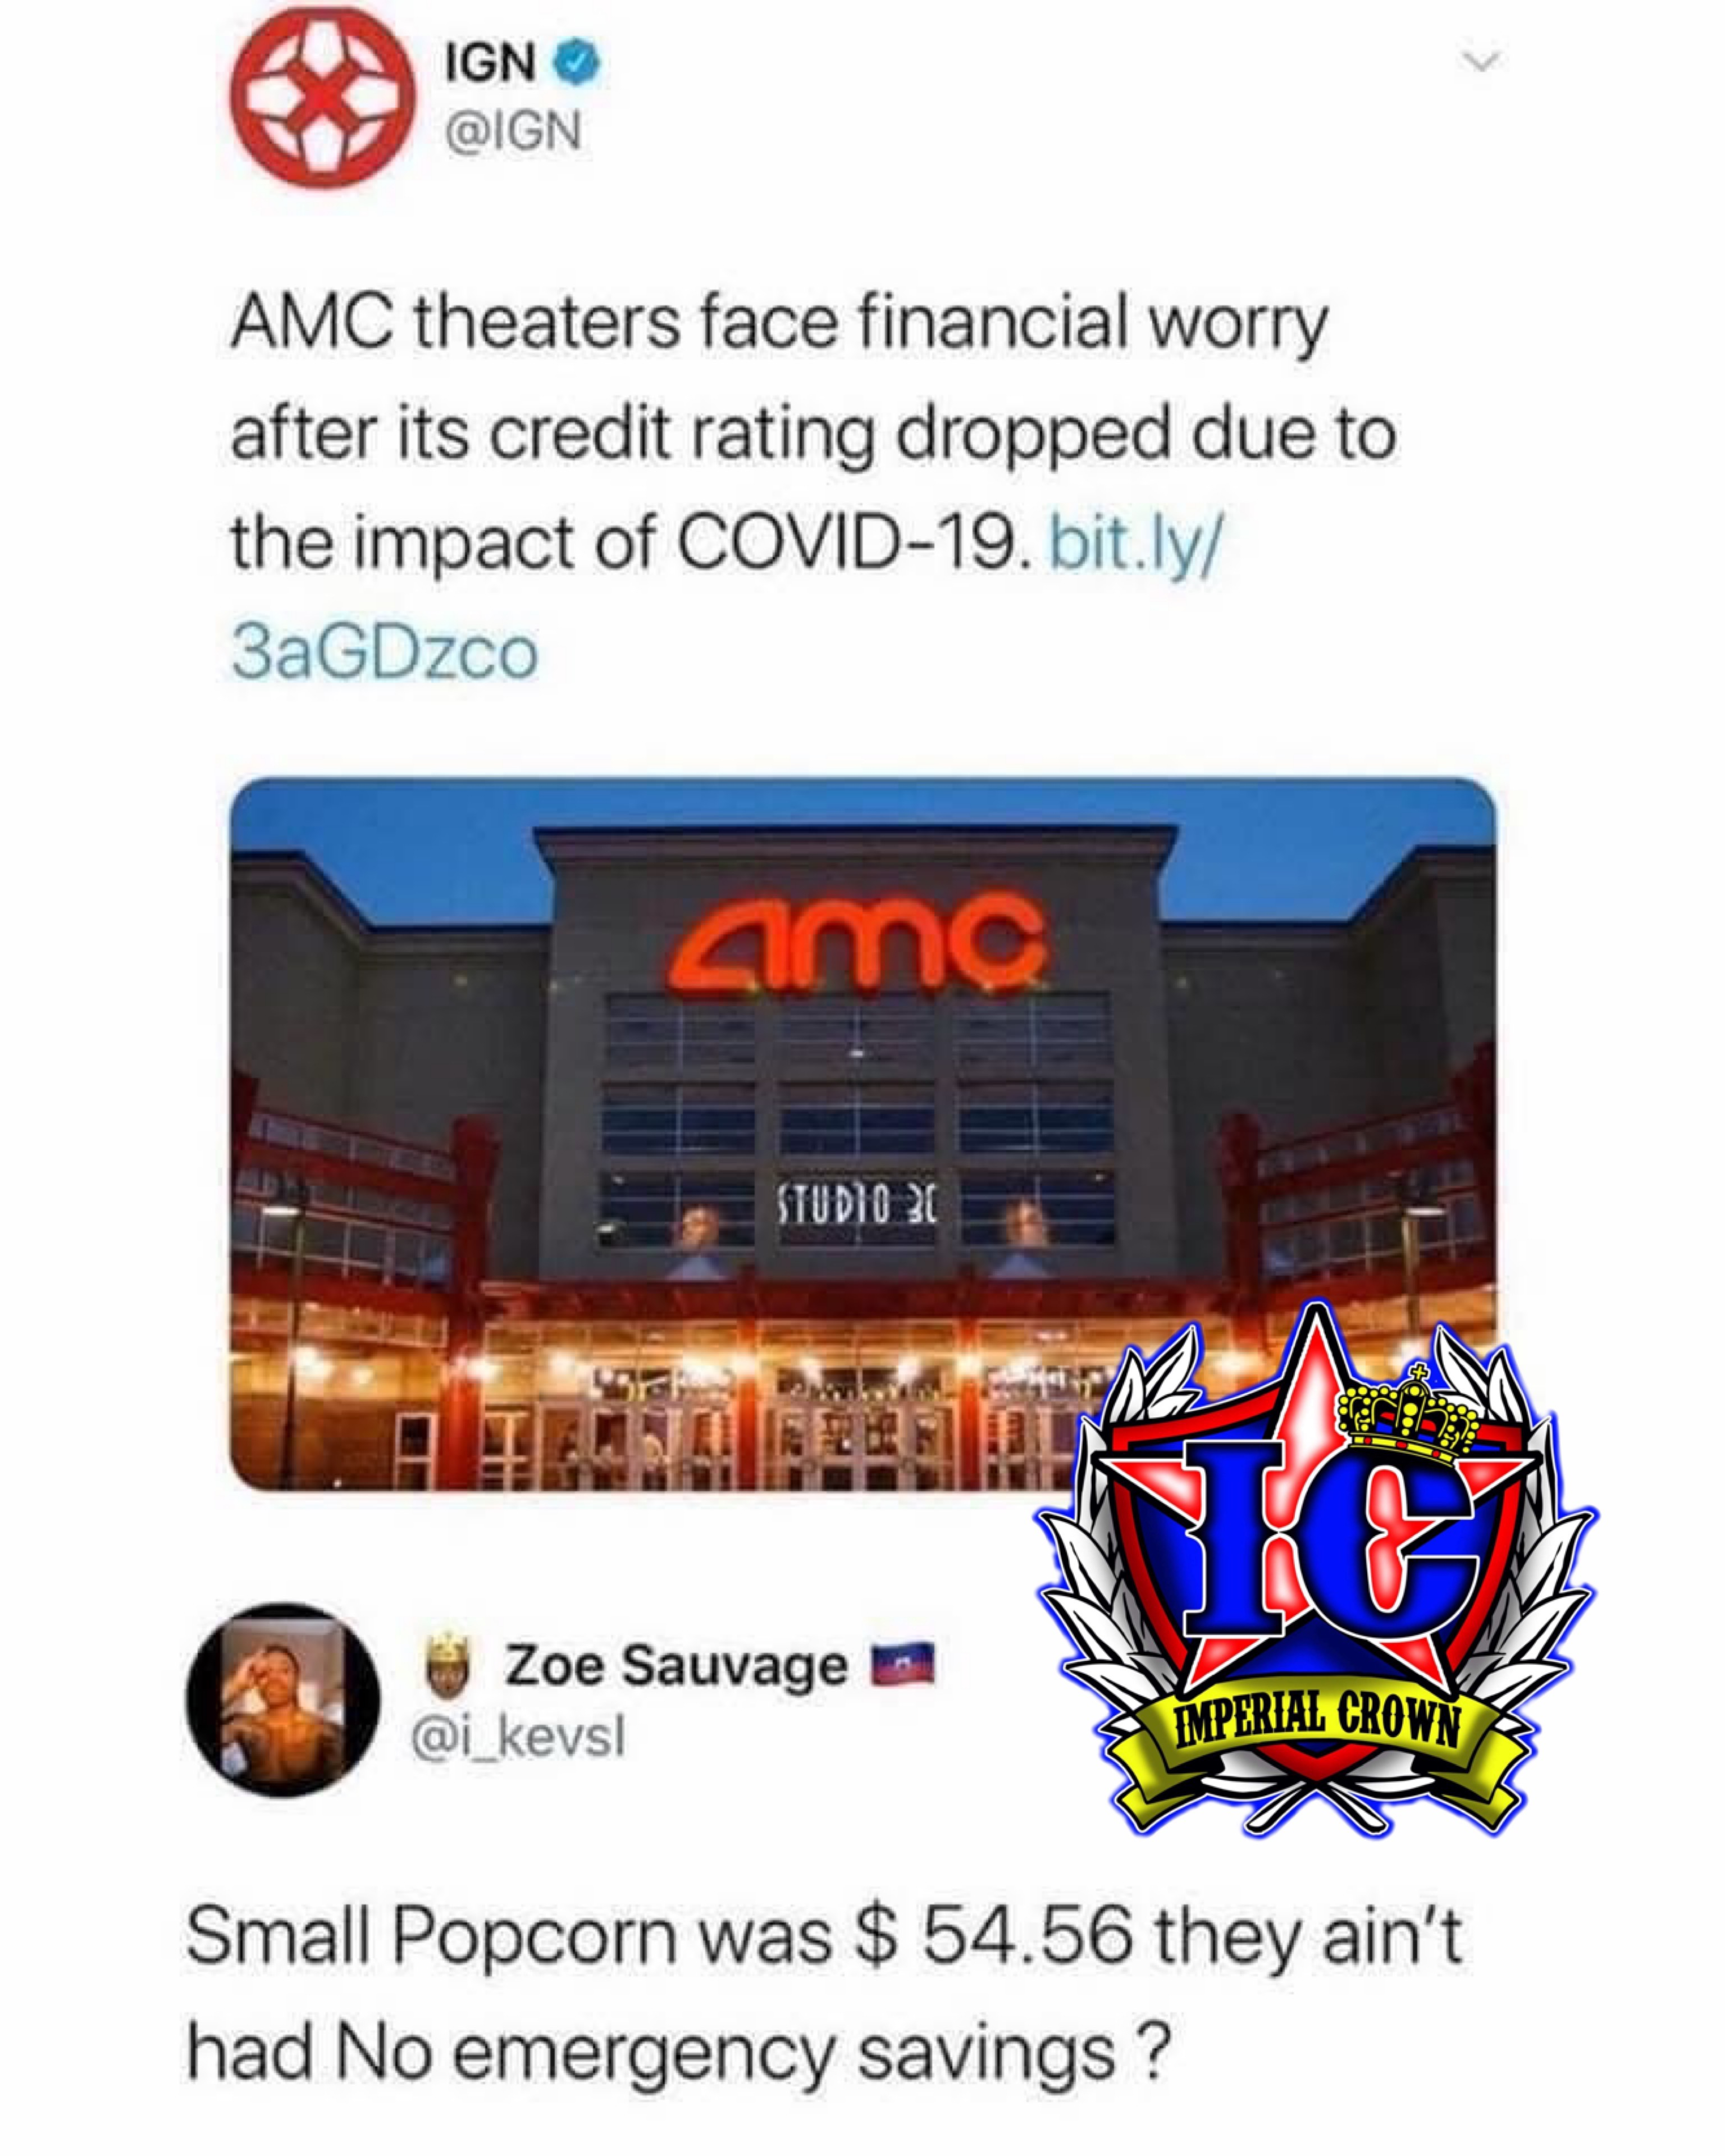 AMC theaters face financial worry after it's credit rating dropped due to the impact of COVID-19